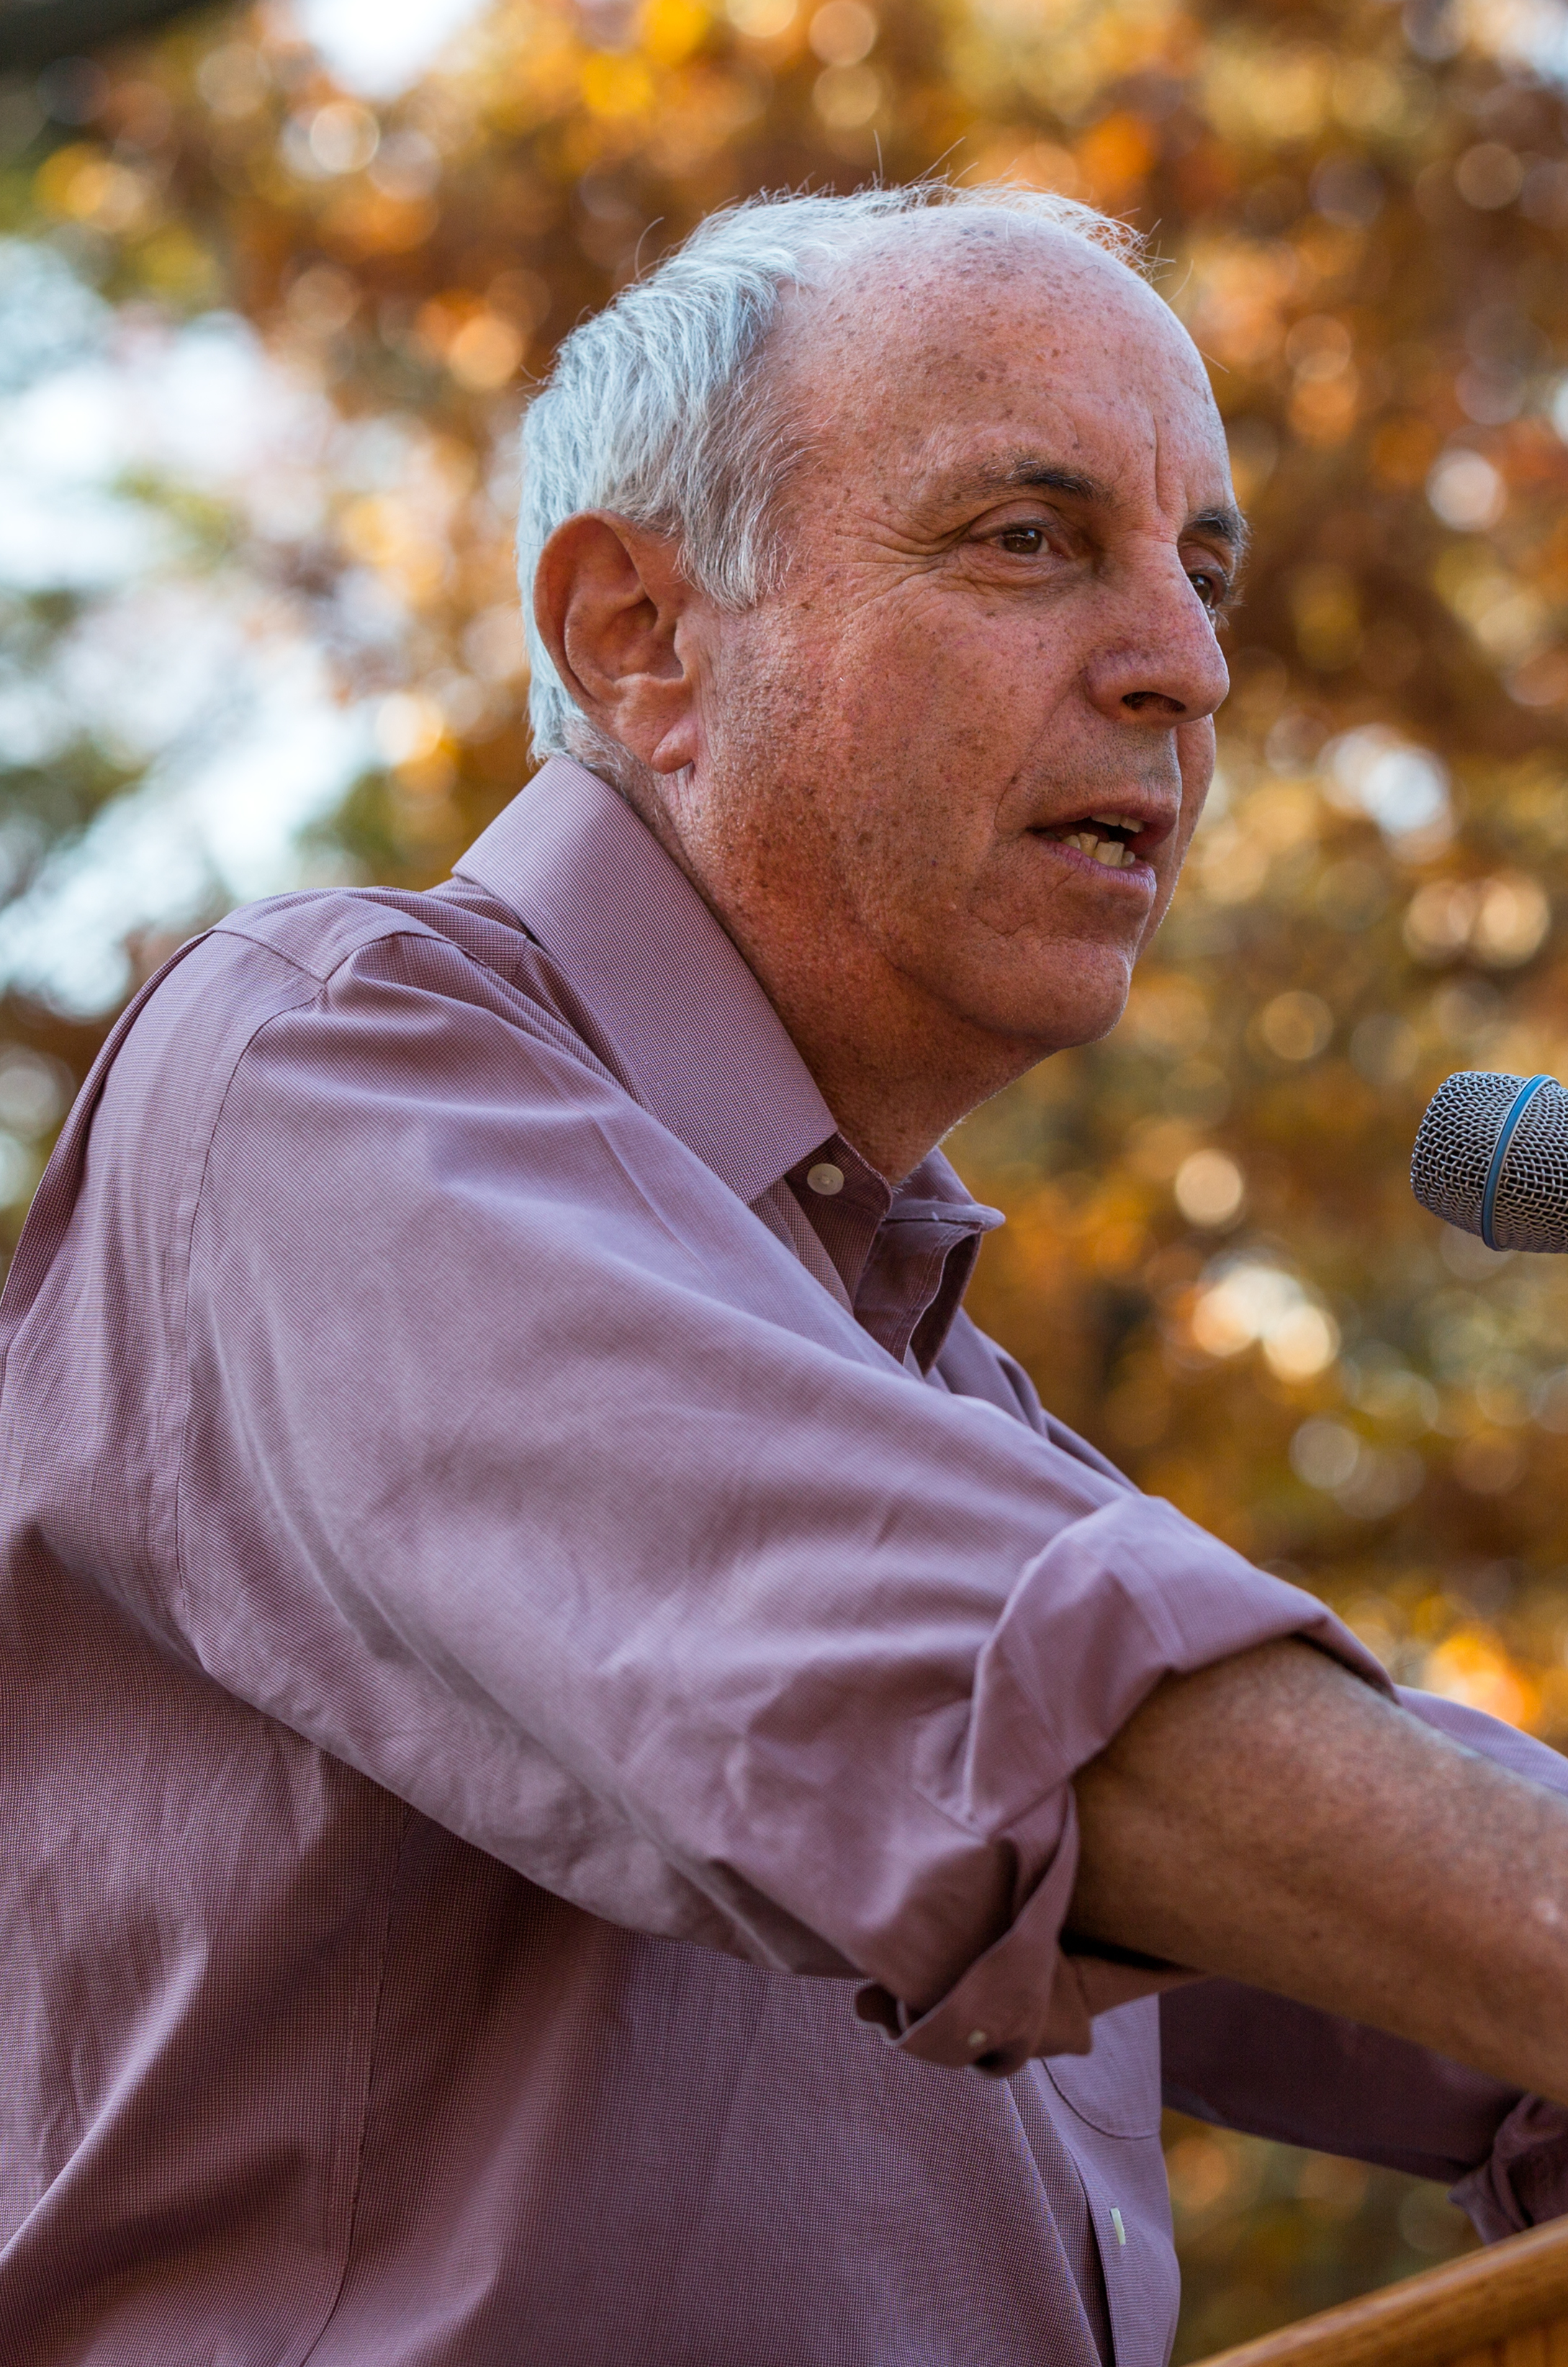 Our_Revolution_chairman_Larry_Cohen_at_the_People's_Rally,_Washington_DC_(31028587676)_(cropped)